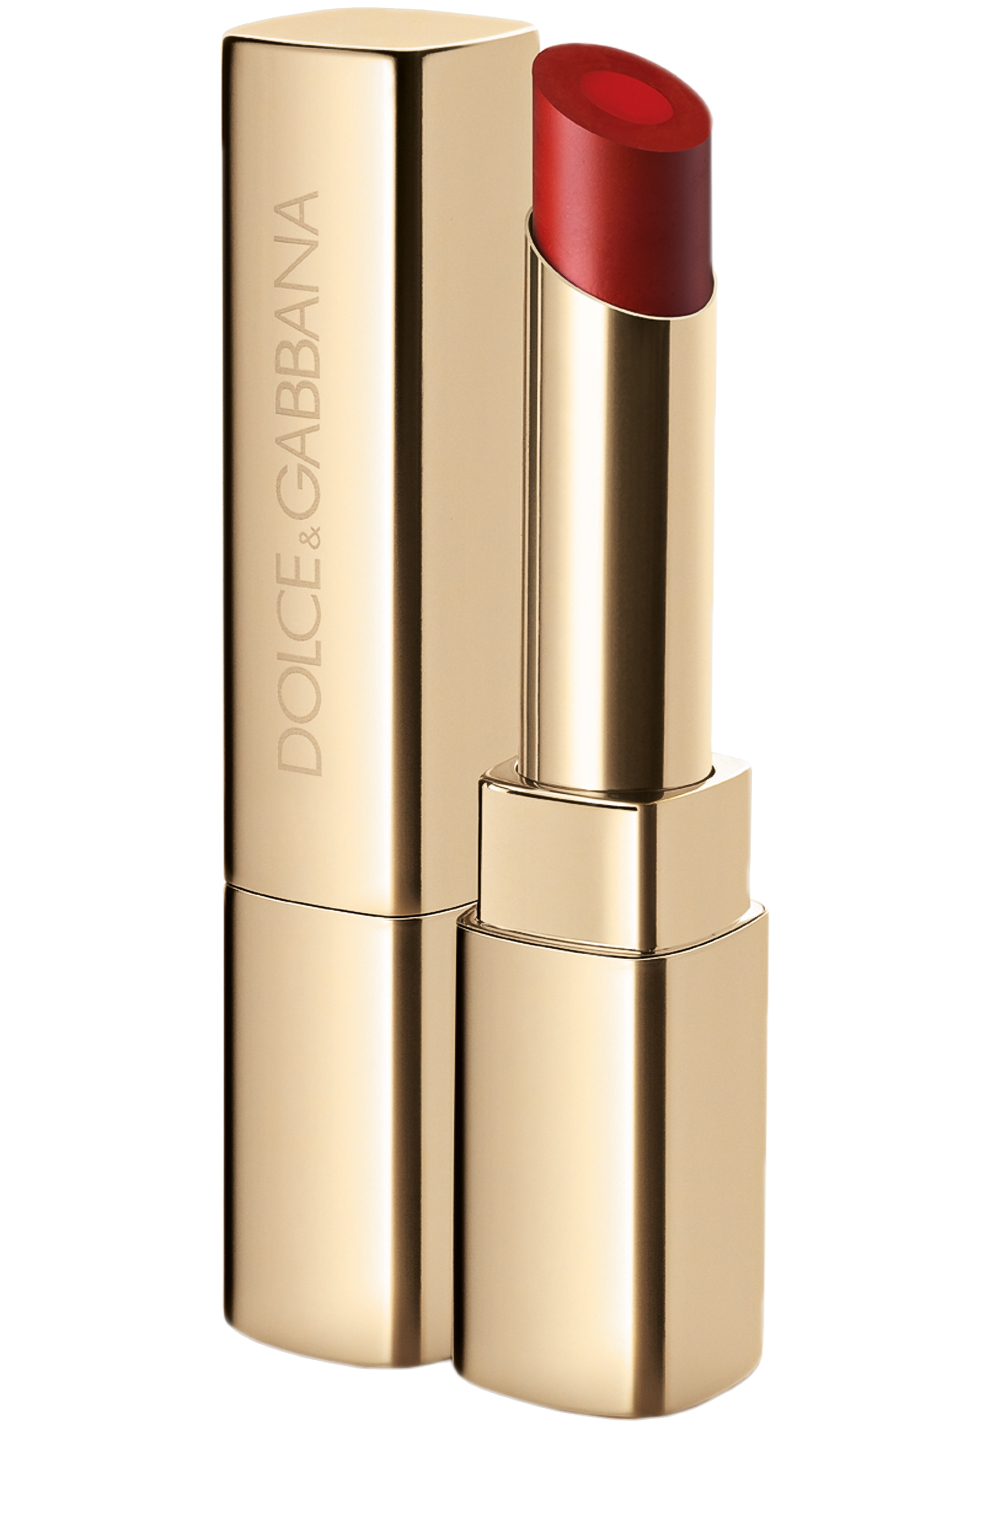 Dolce Gabbana Помада блеск Passion Duo Gloss Fusion Lipstick Infatuation